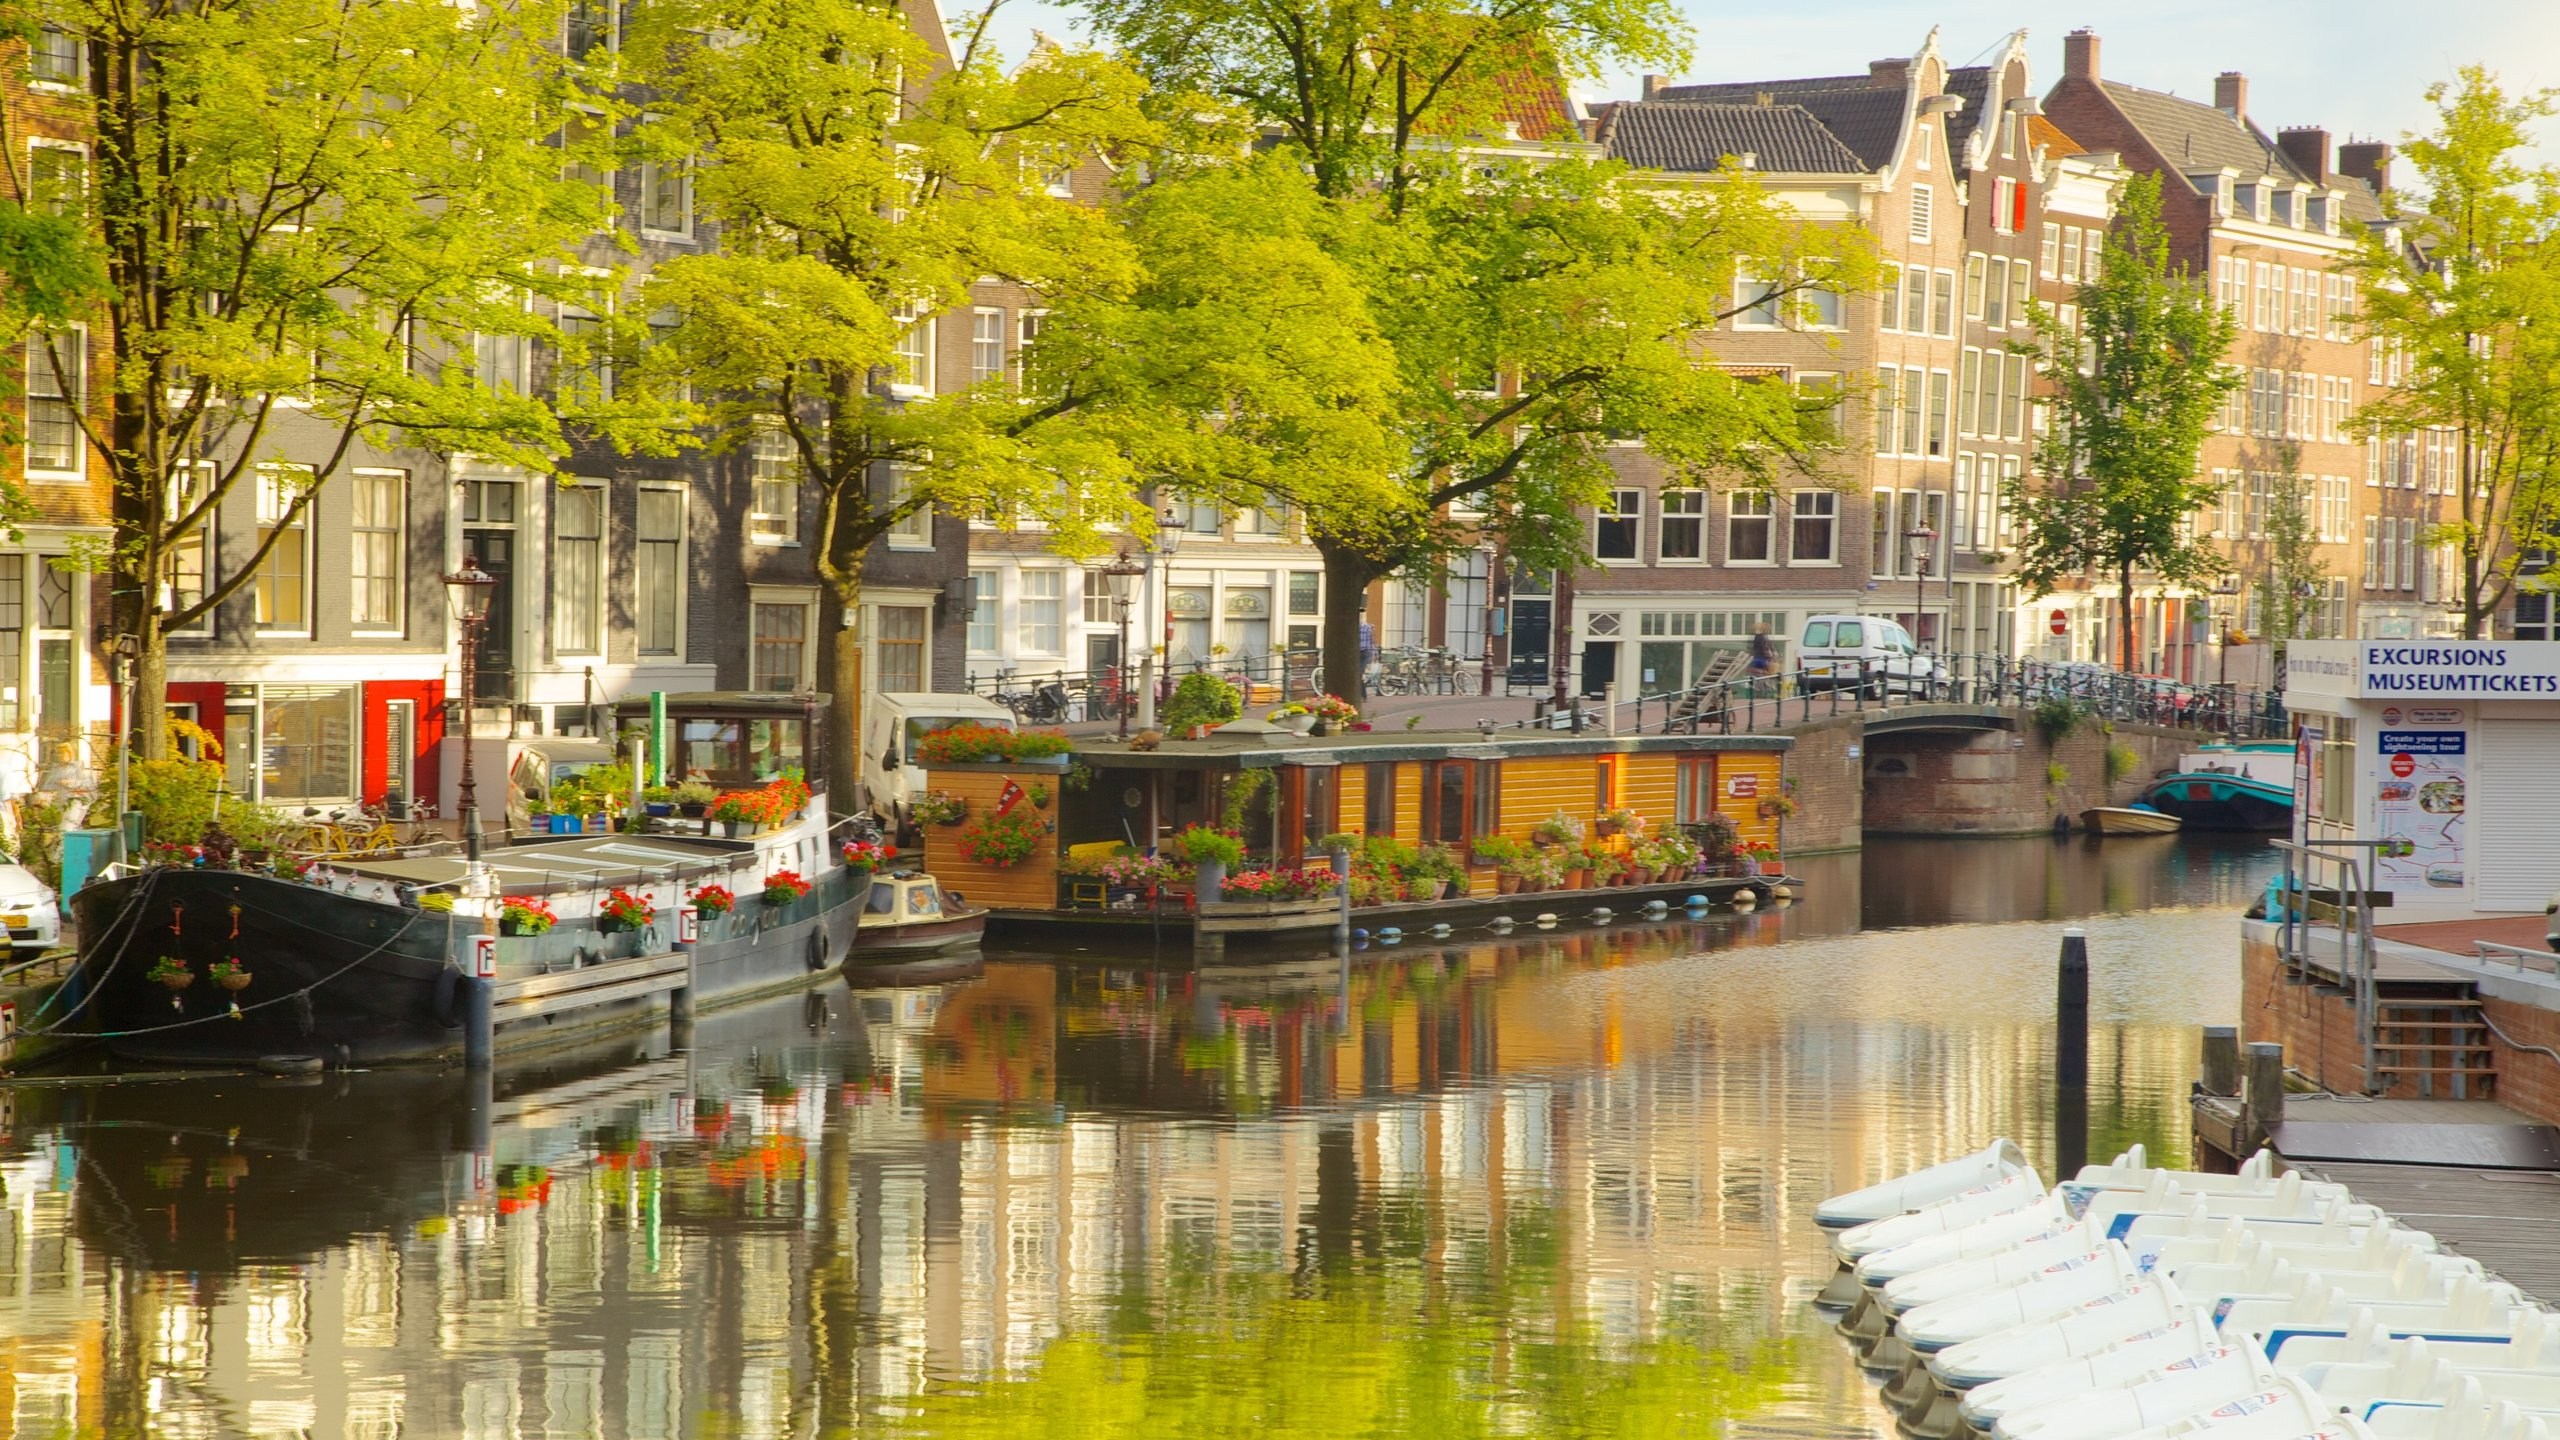 top 10 hotels in canal ring for 2019 81 hotel deals on expedia rh expedia com